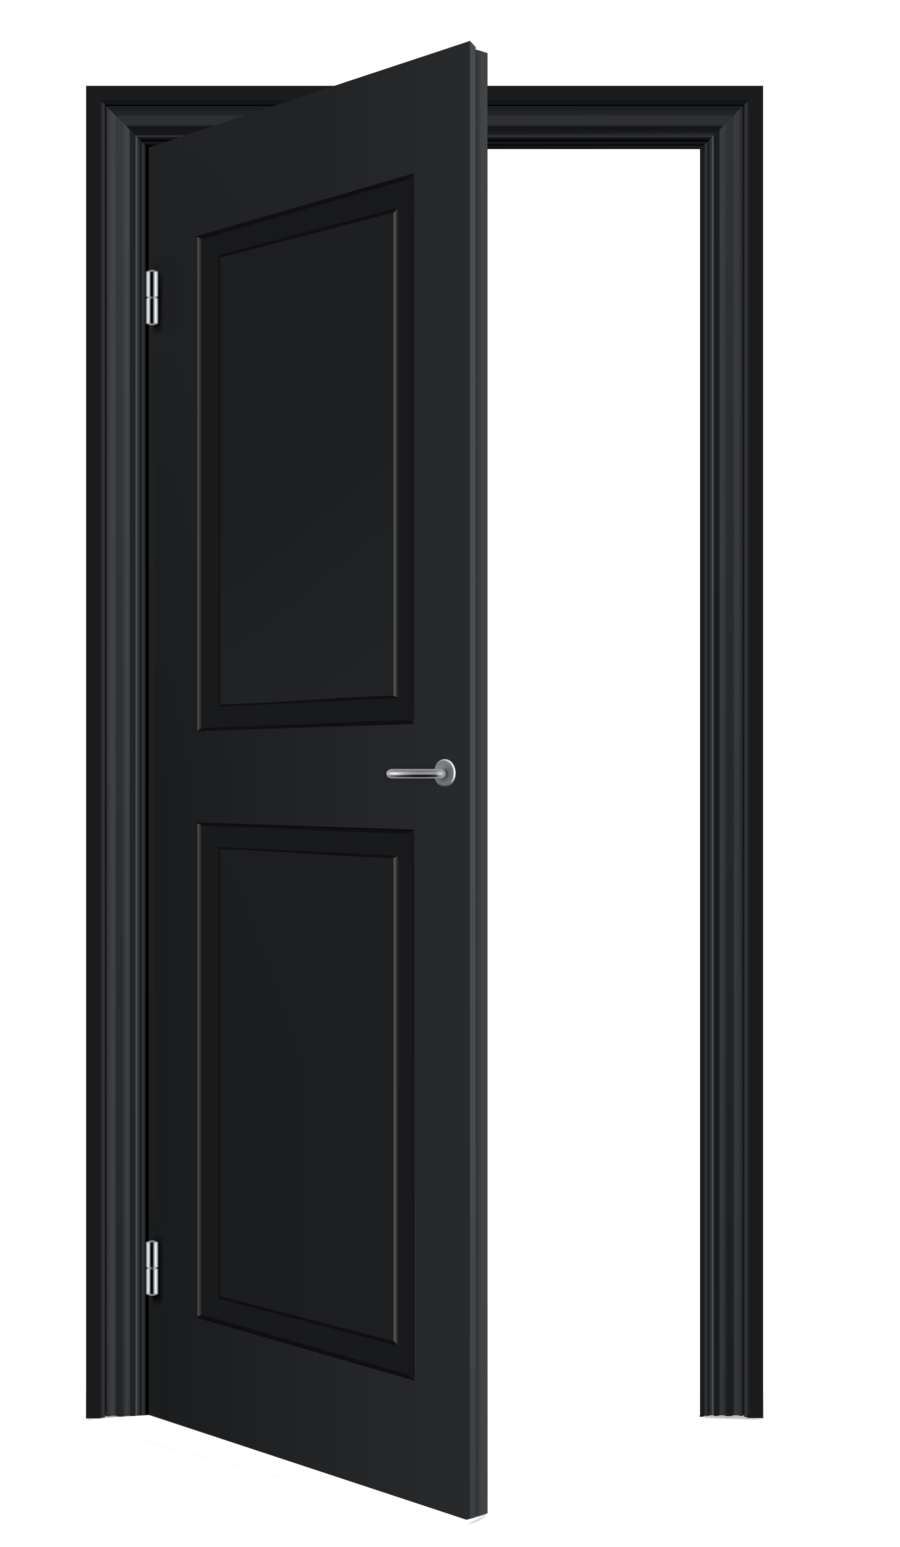 Door png. Images wood open